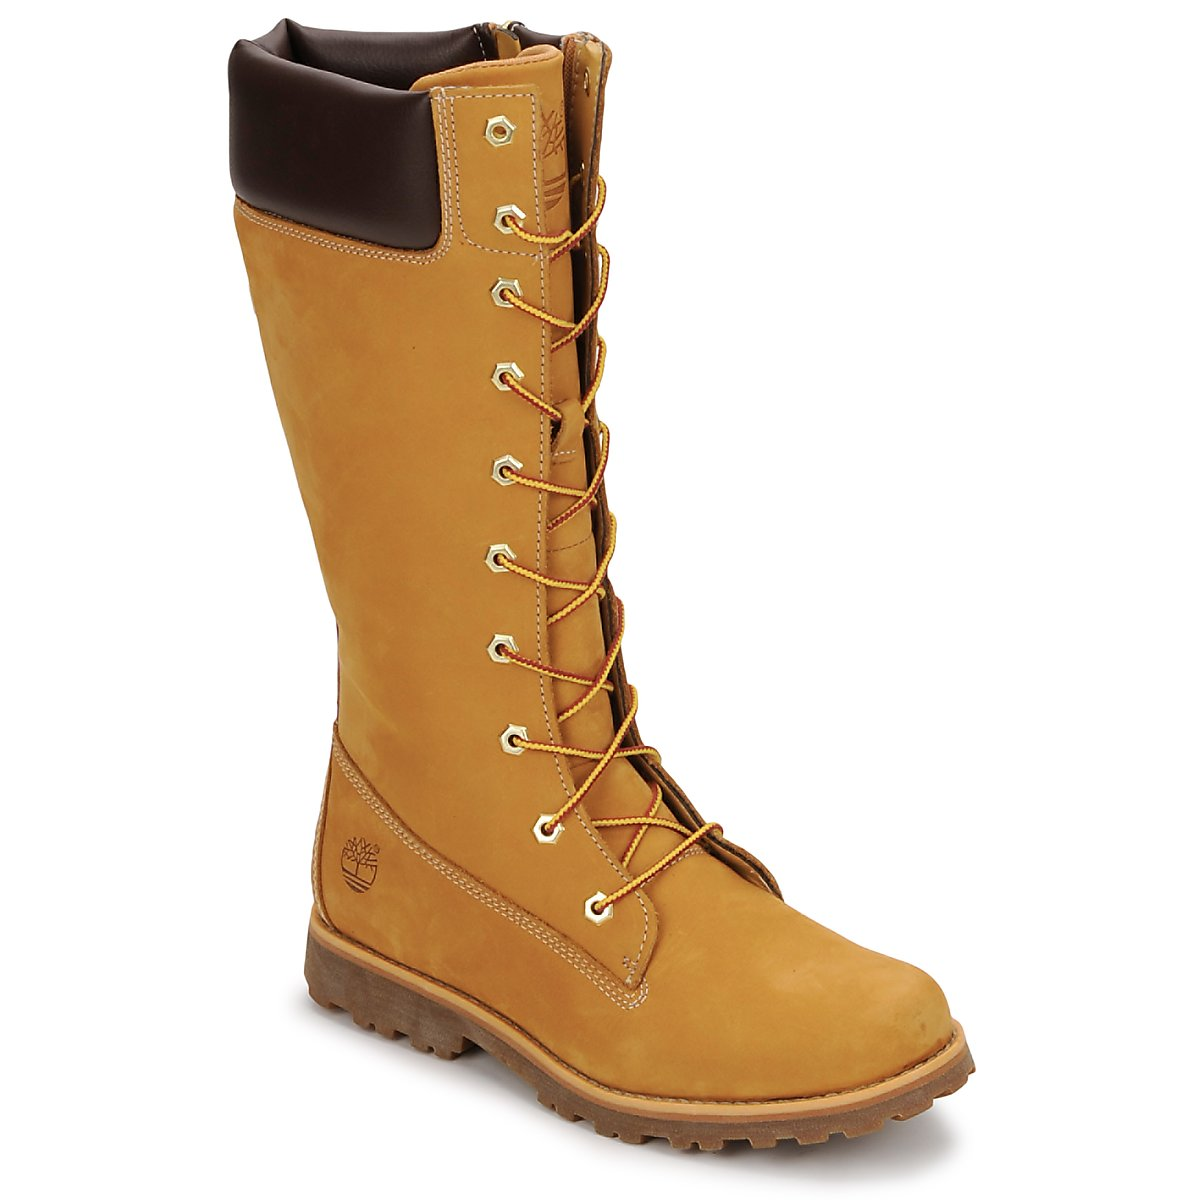 Botte ville Timberland GIRLS CLASSIC TALL LACE UP WITH SIDE ZIP Cognac